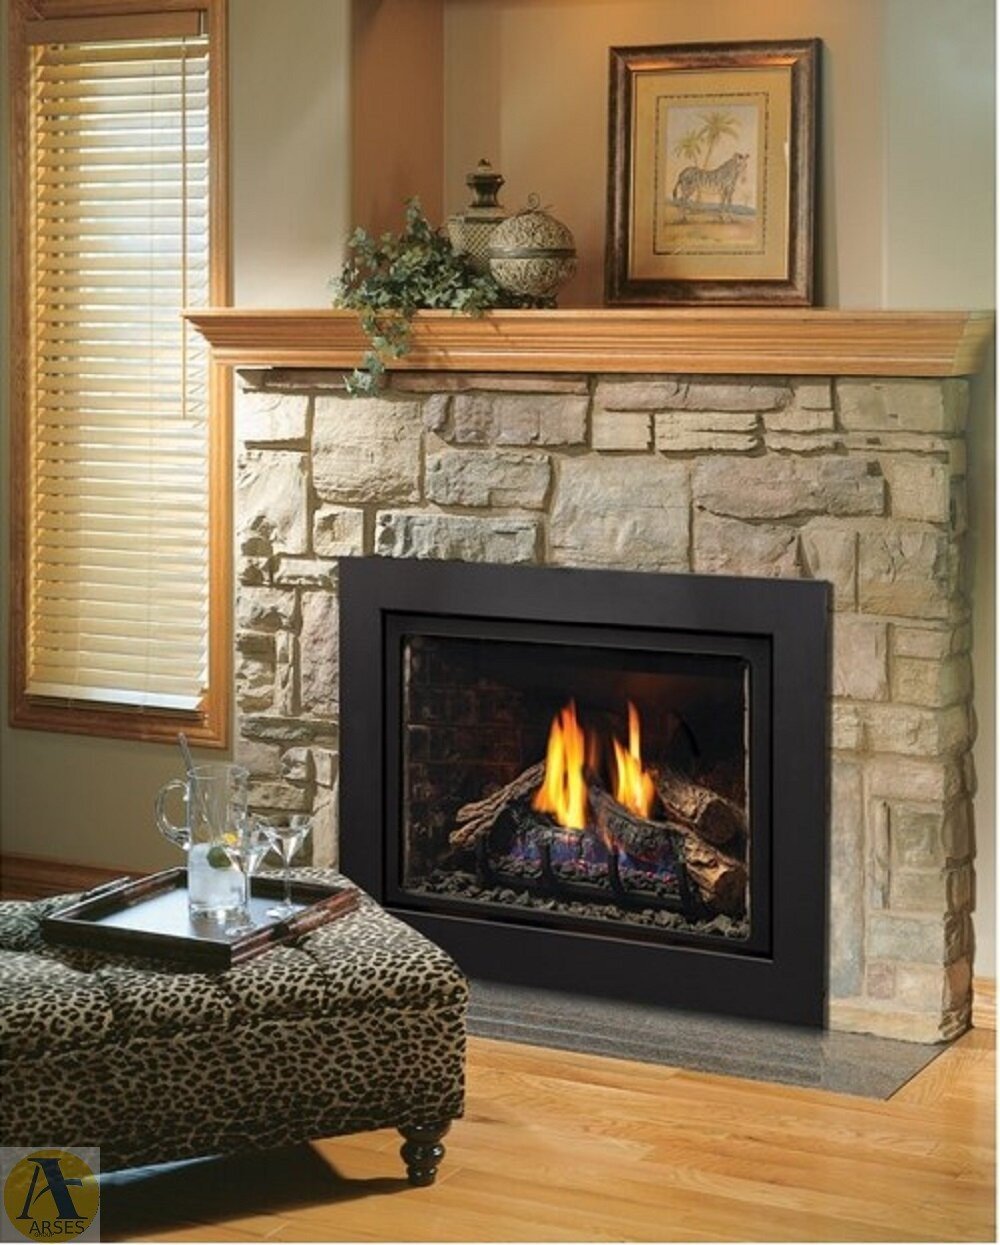 direct vent natural gaspropane fireplace insert - شومینه هیزمی مدرن